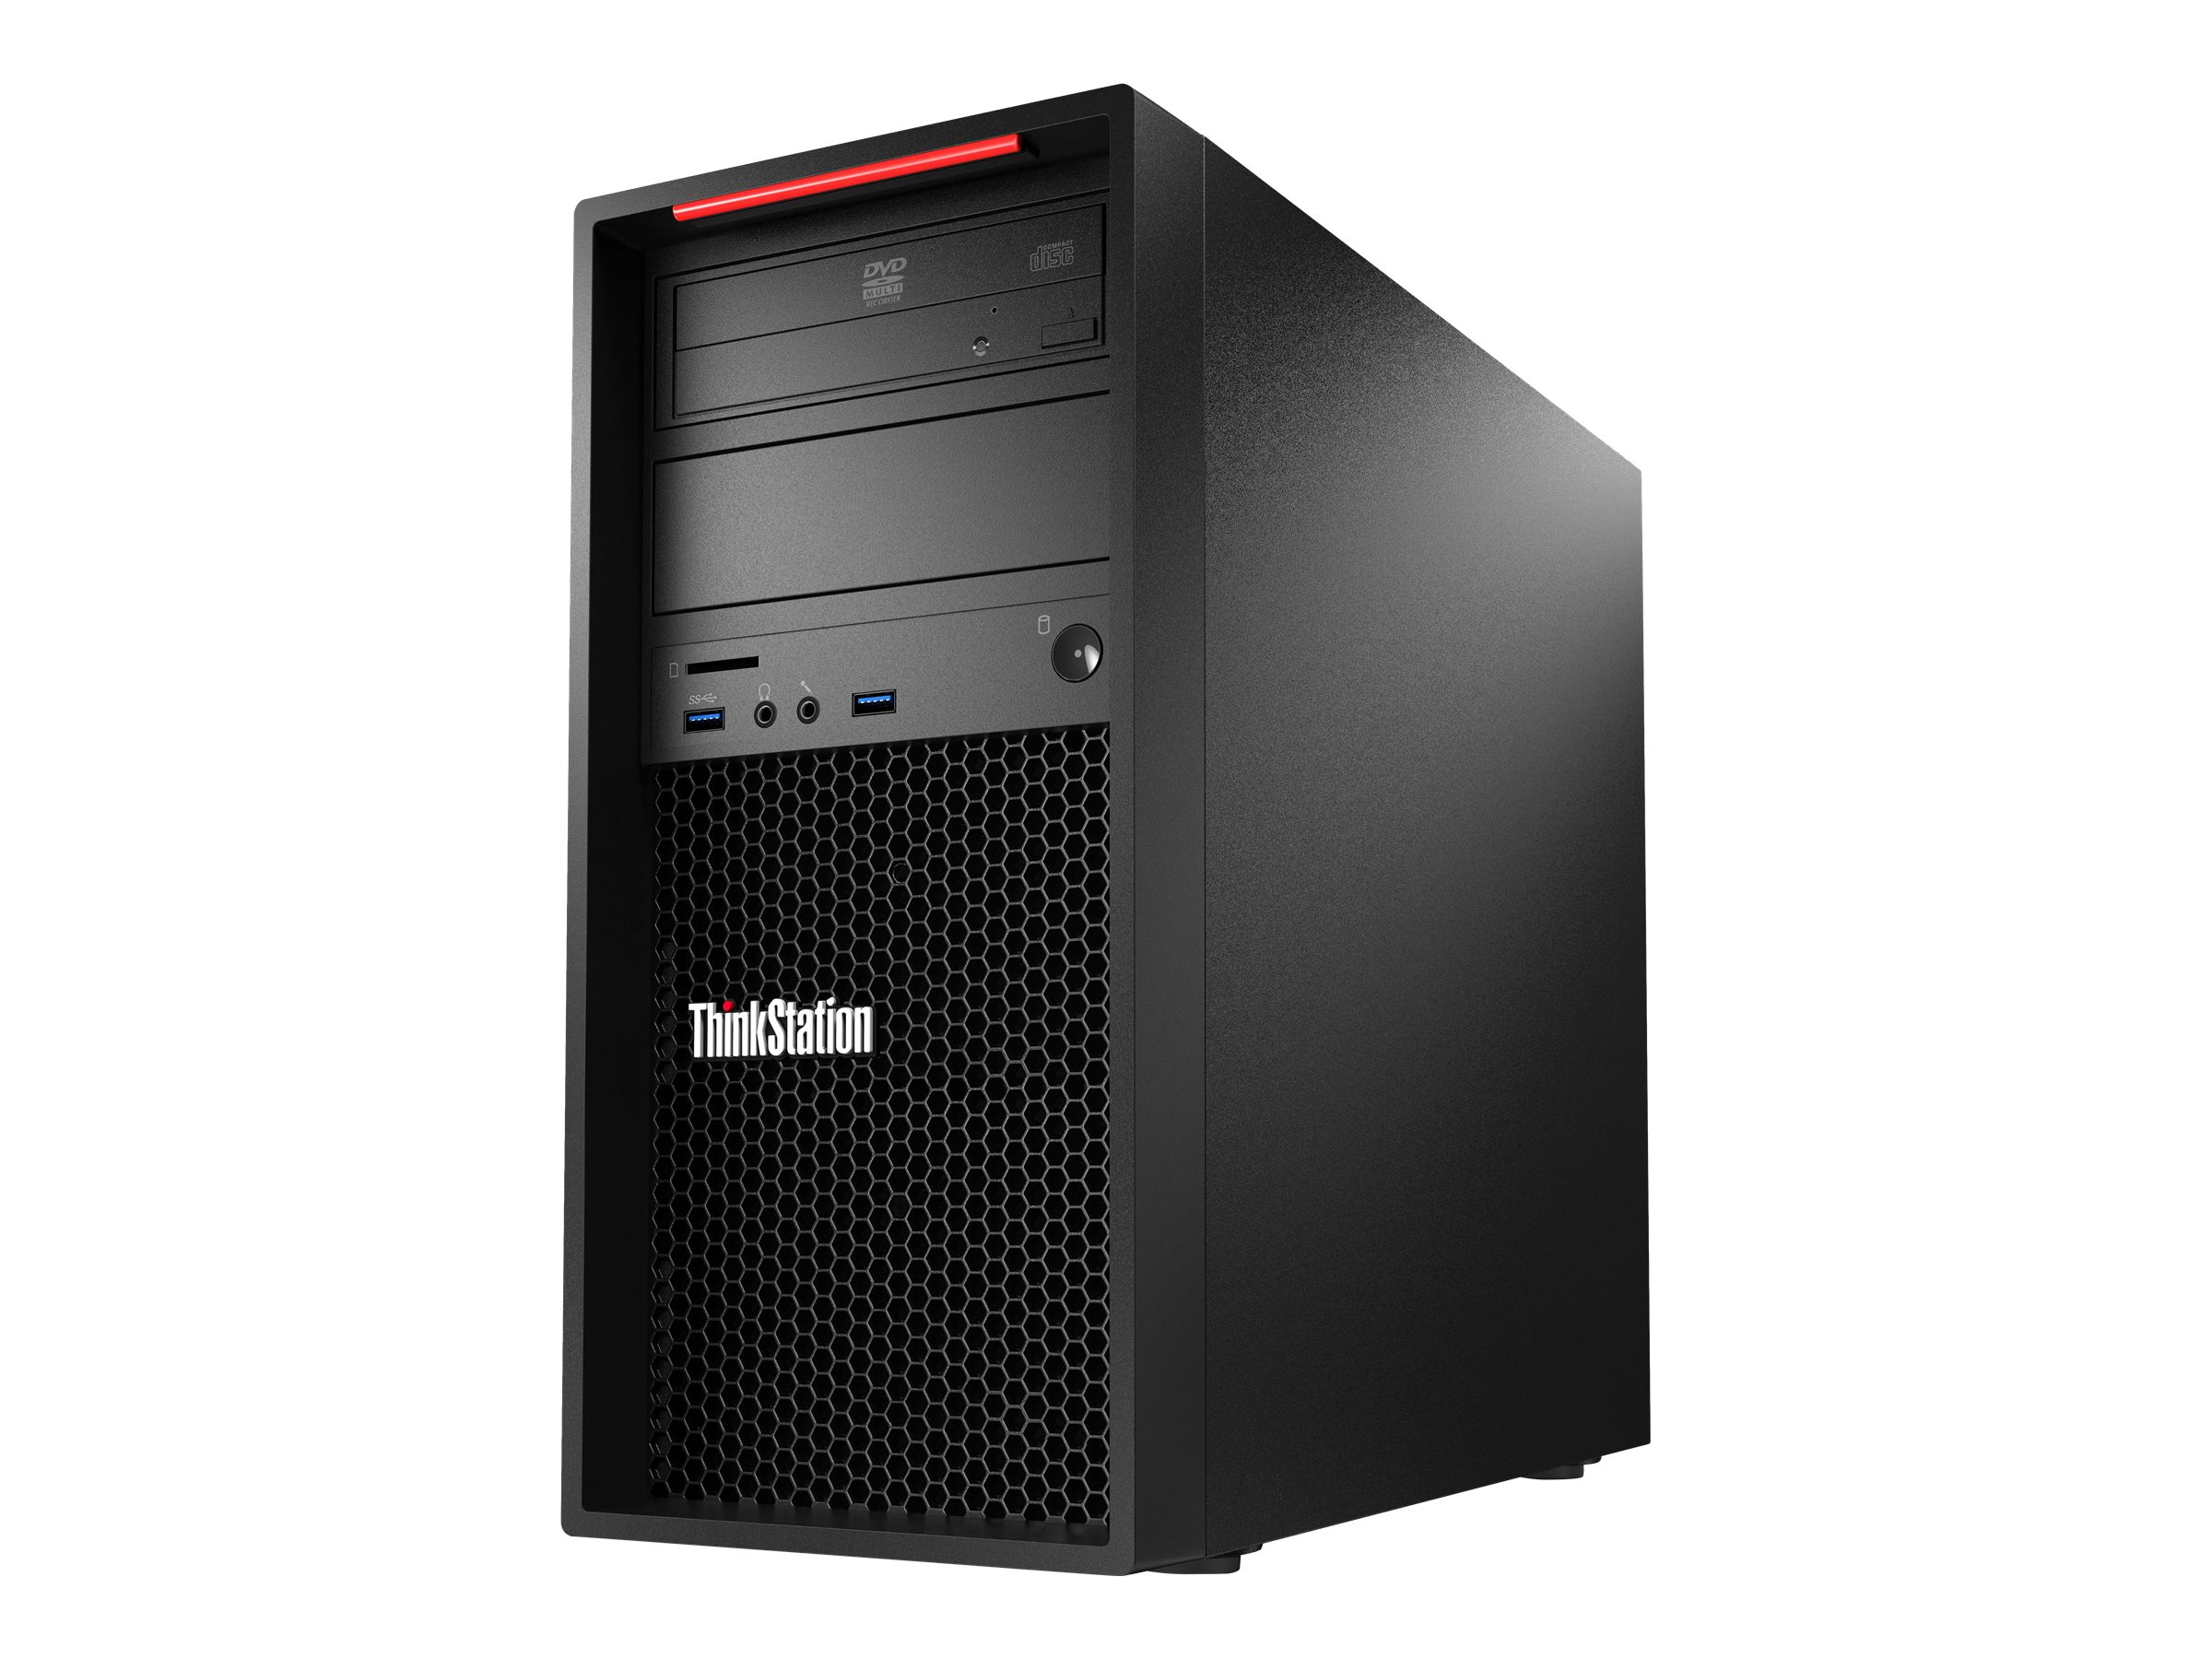 Lenovo ThinkStation P310 Xeon E3-1220 v5 W10DG